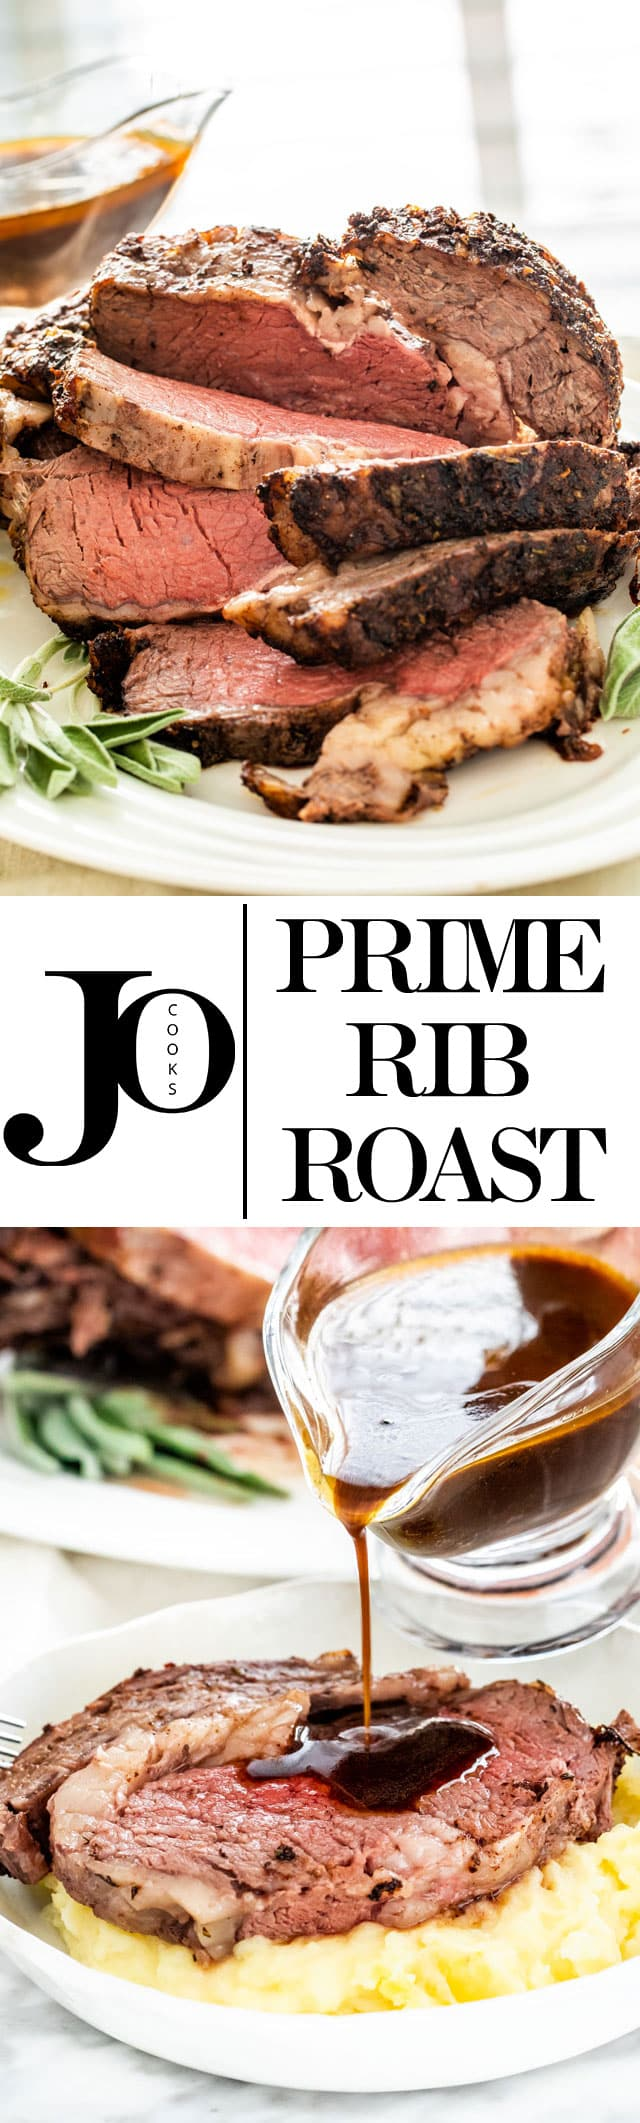 This Prime Rib Roast is cooked to a perfect medium rare, and smothered in a compound butter spiced with chili powder, cumin, fresh herbs, and garlic. This feast is fit for any holiday or special occasion. #primeribroast